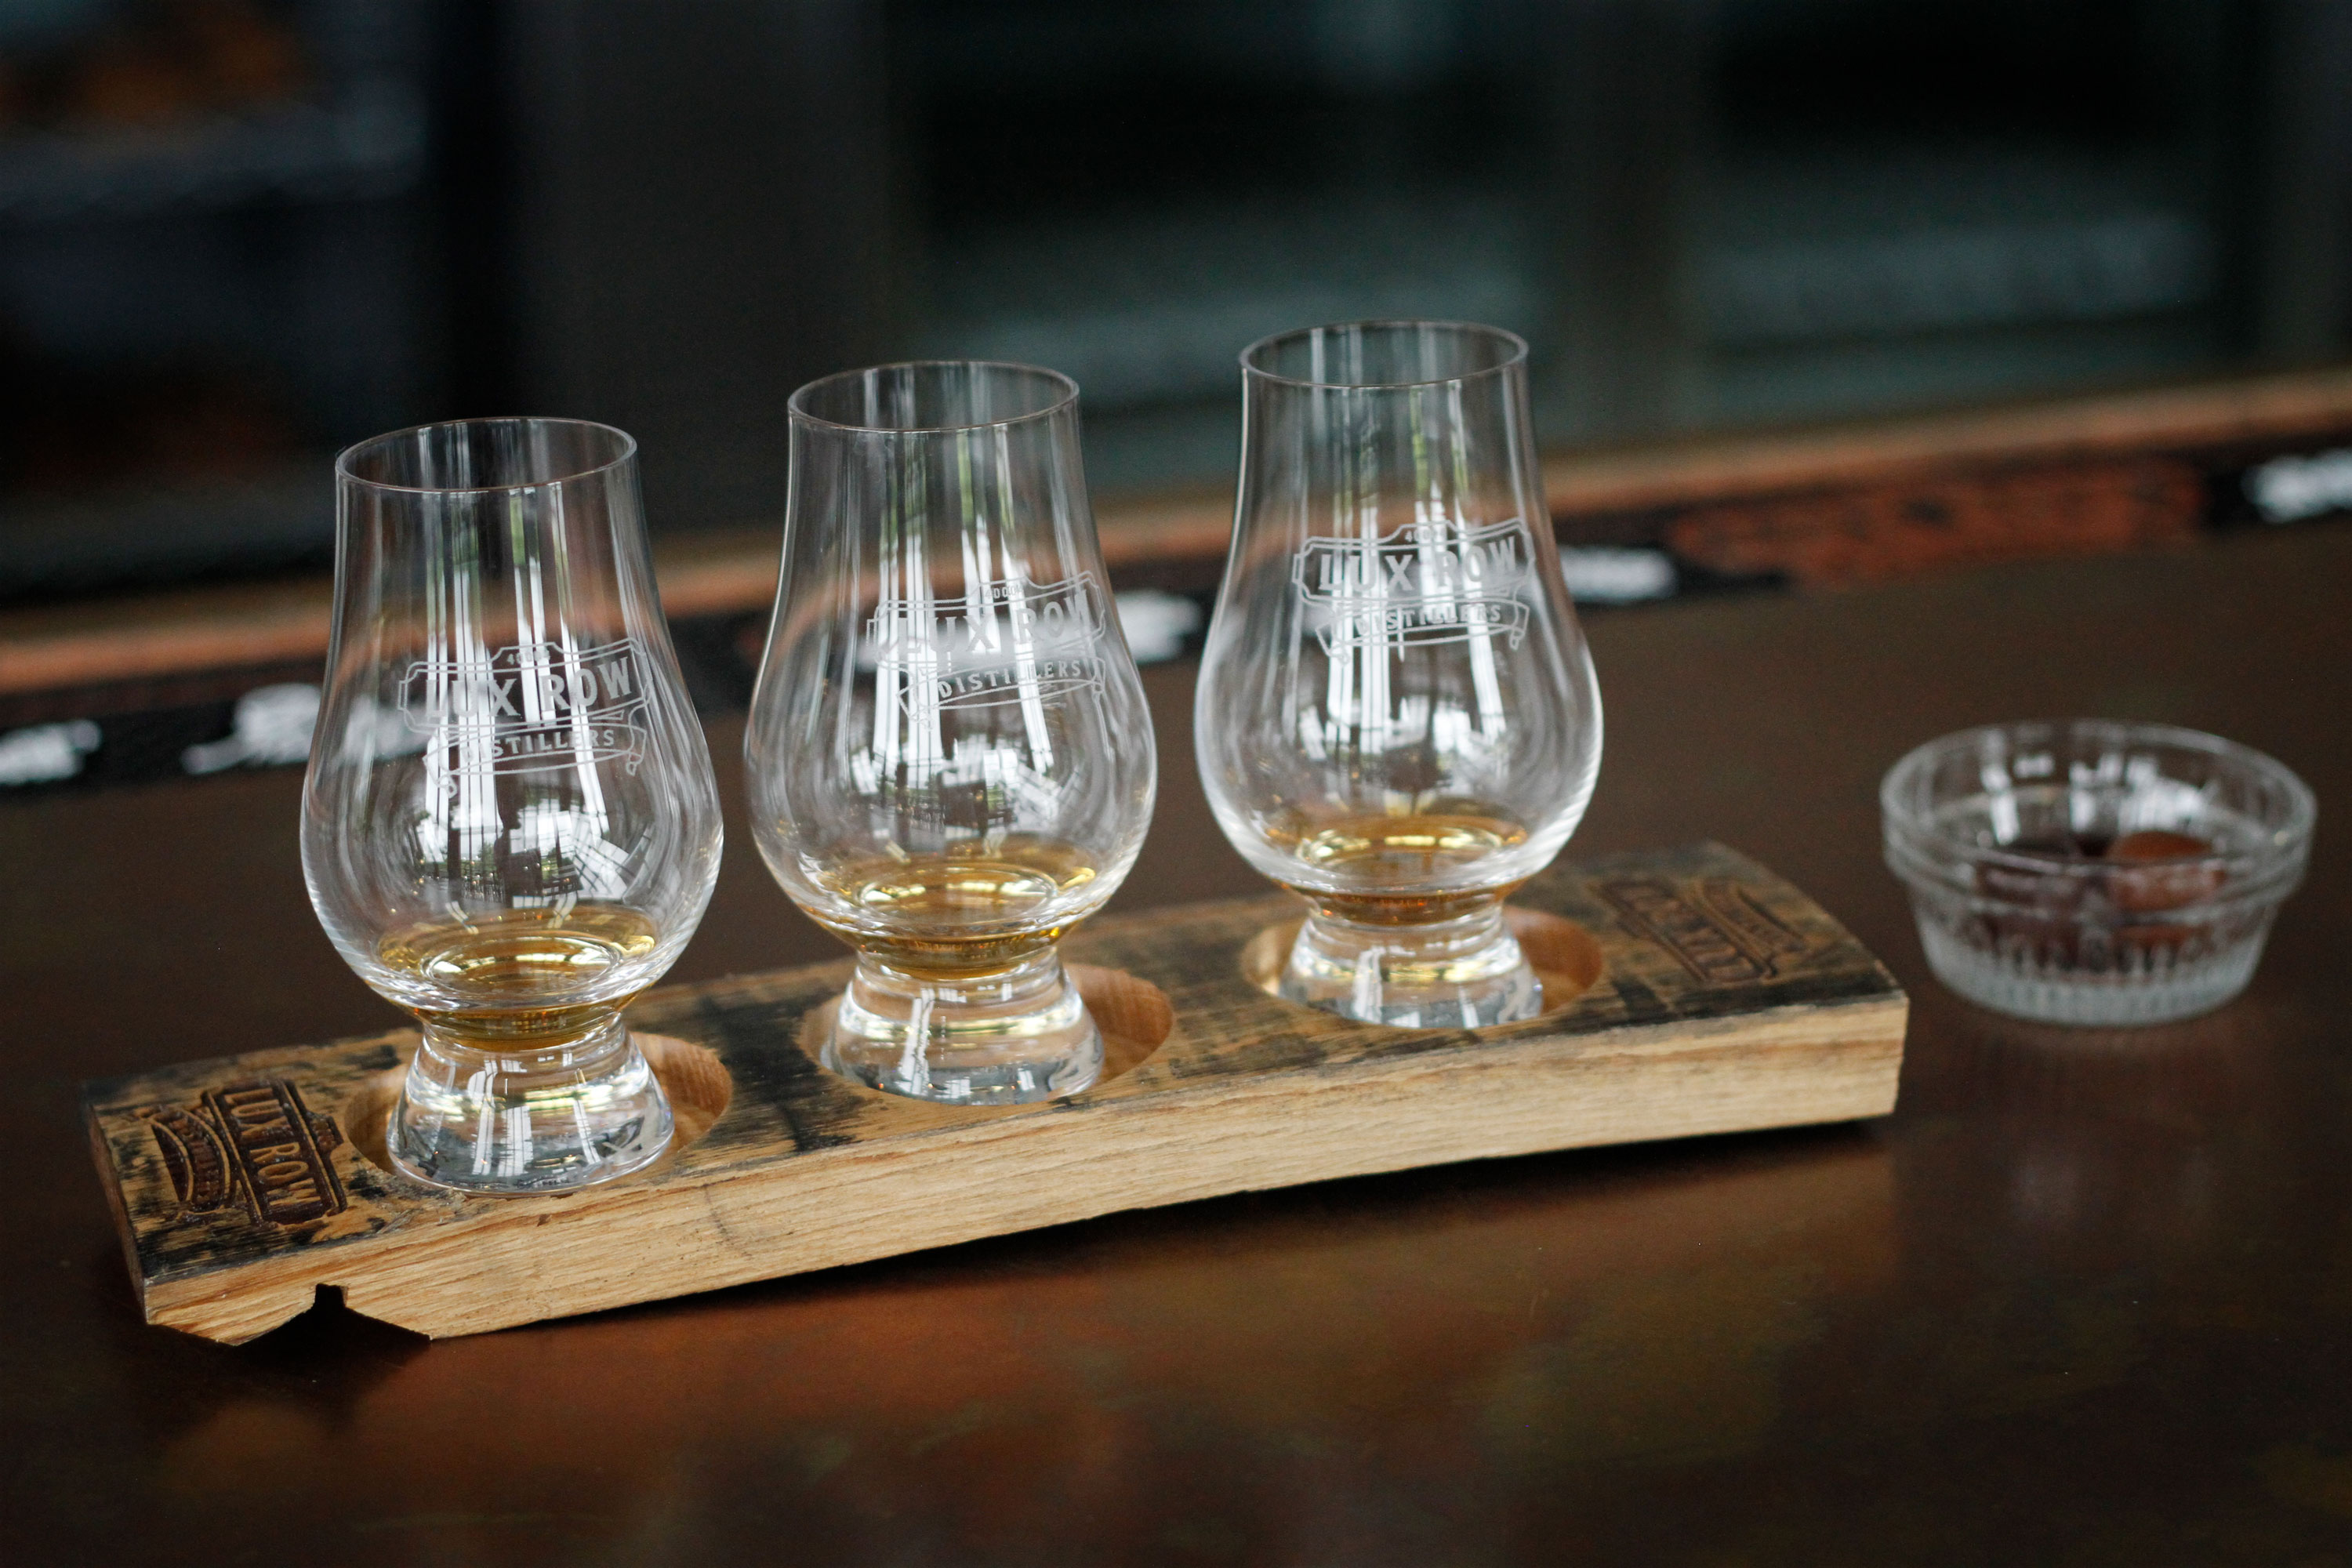 Lux Row whiskey tasting